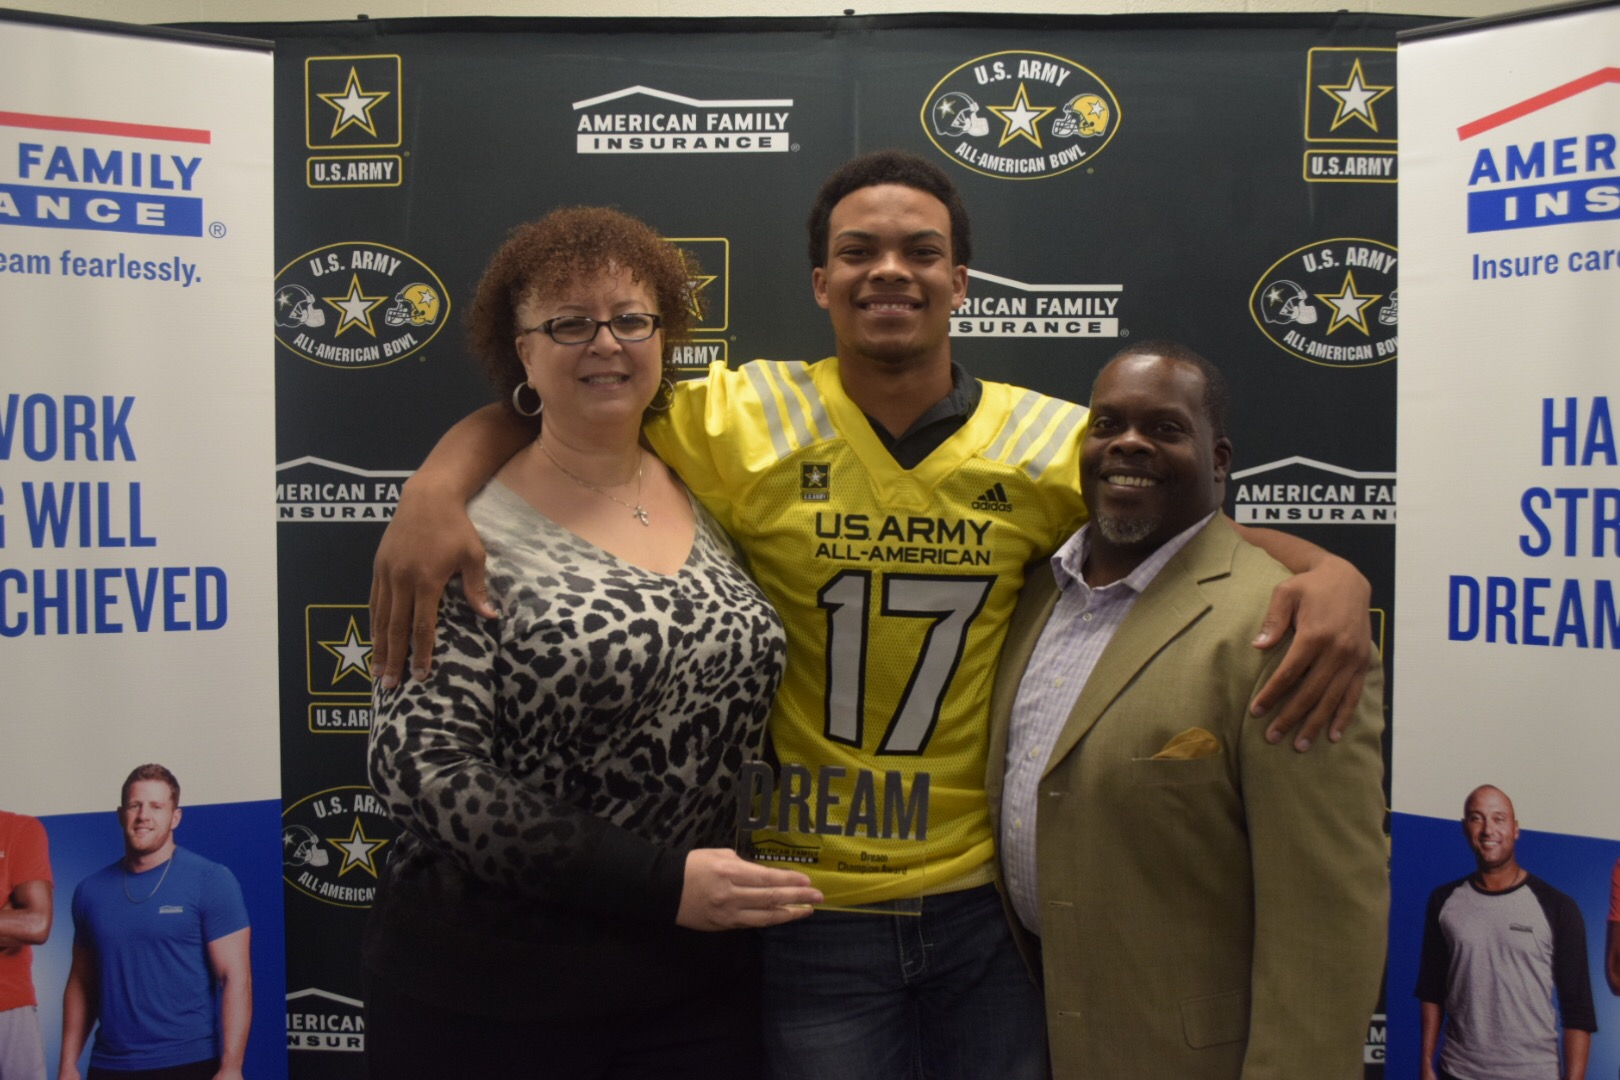 Earnest Brown presented his parents, Angela and Earnest Brown III, with the Dream Champion Award. (Photo: AAG)